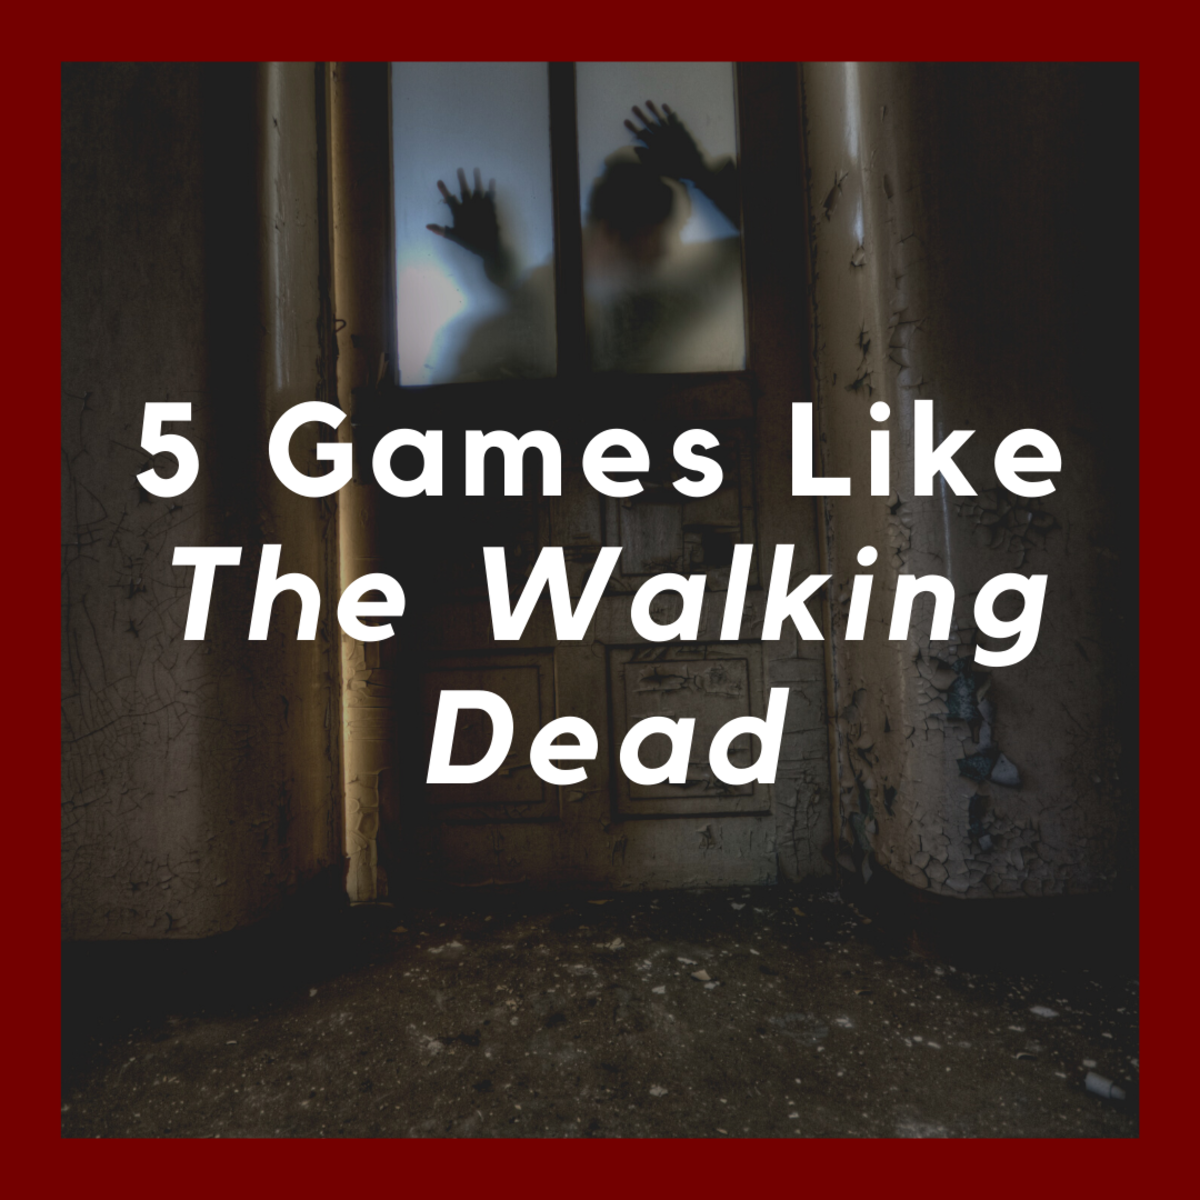 Prepare yourself for some scary immersive games!